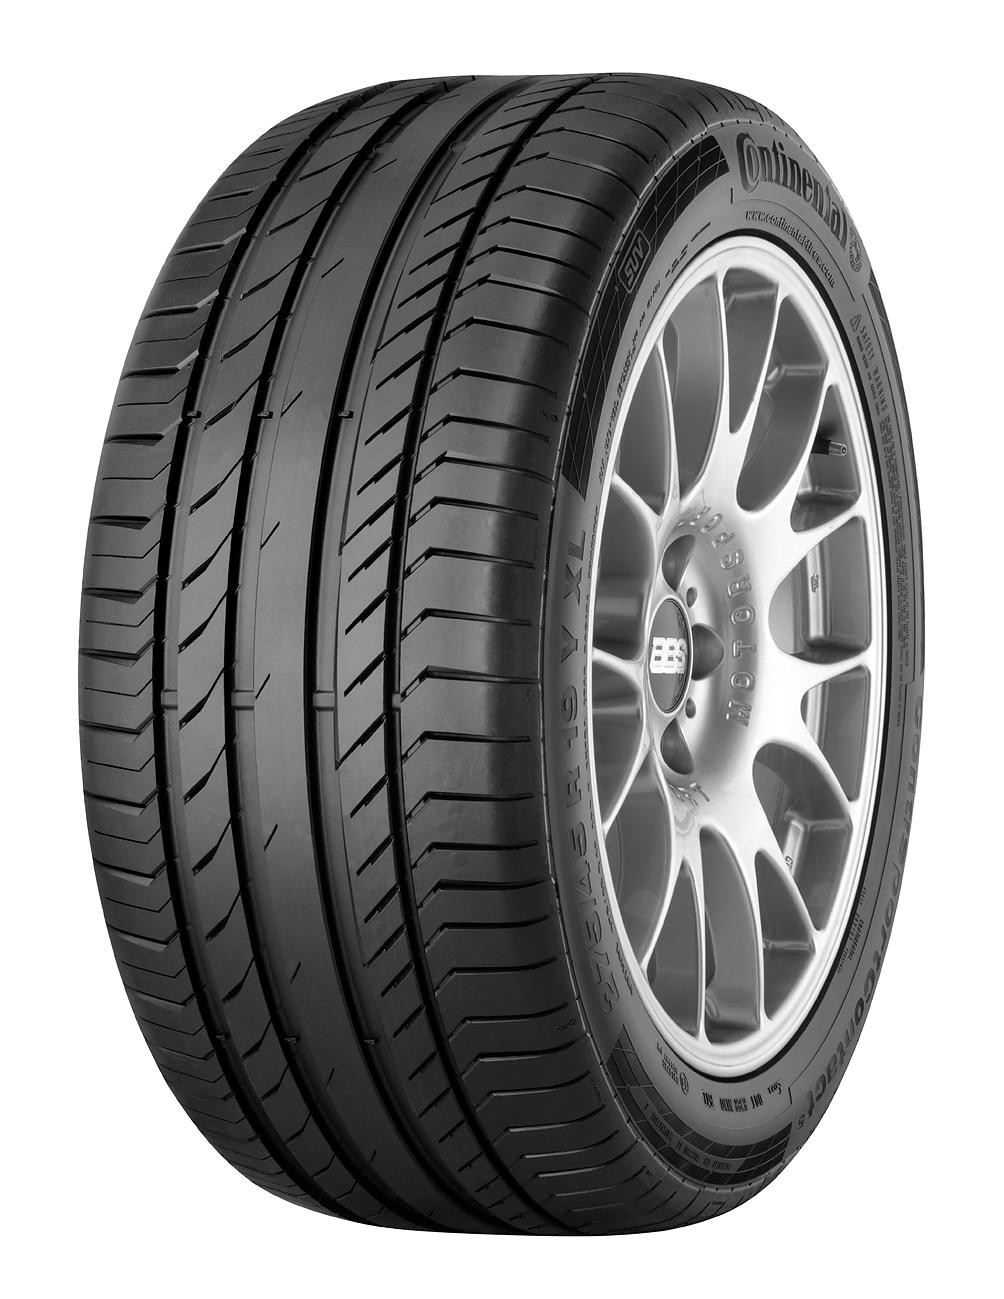 CONTINENTAL 255/50 R19 ContiSportContact 5 SUV 107W XL SSR